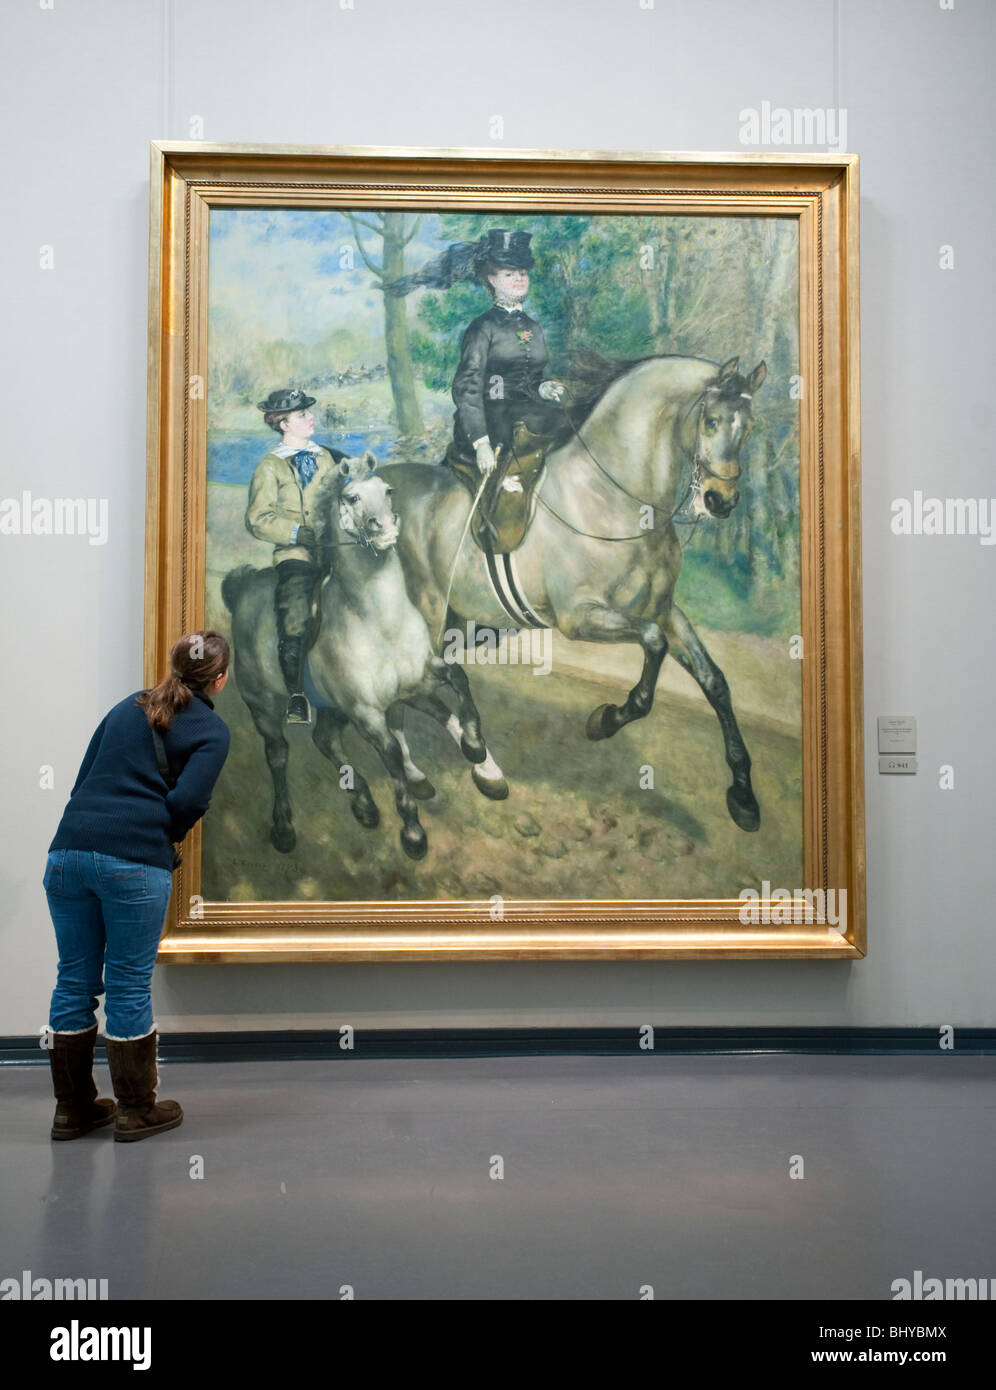 Painting Riding in the Bois de Boulogne by Auguste Renoir at Kunsthalle art museum in Hamburg Germany - Stock Image